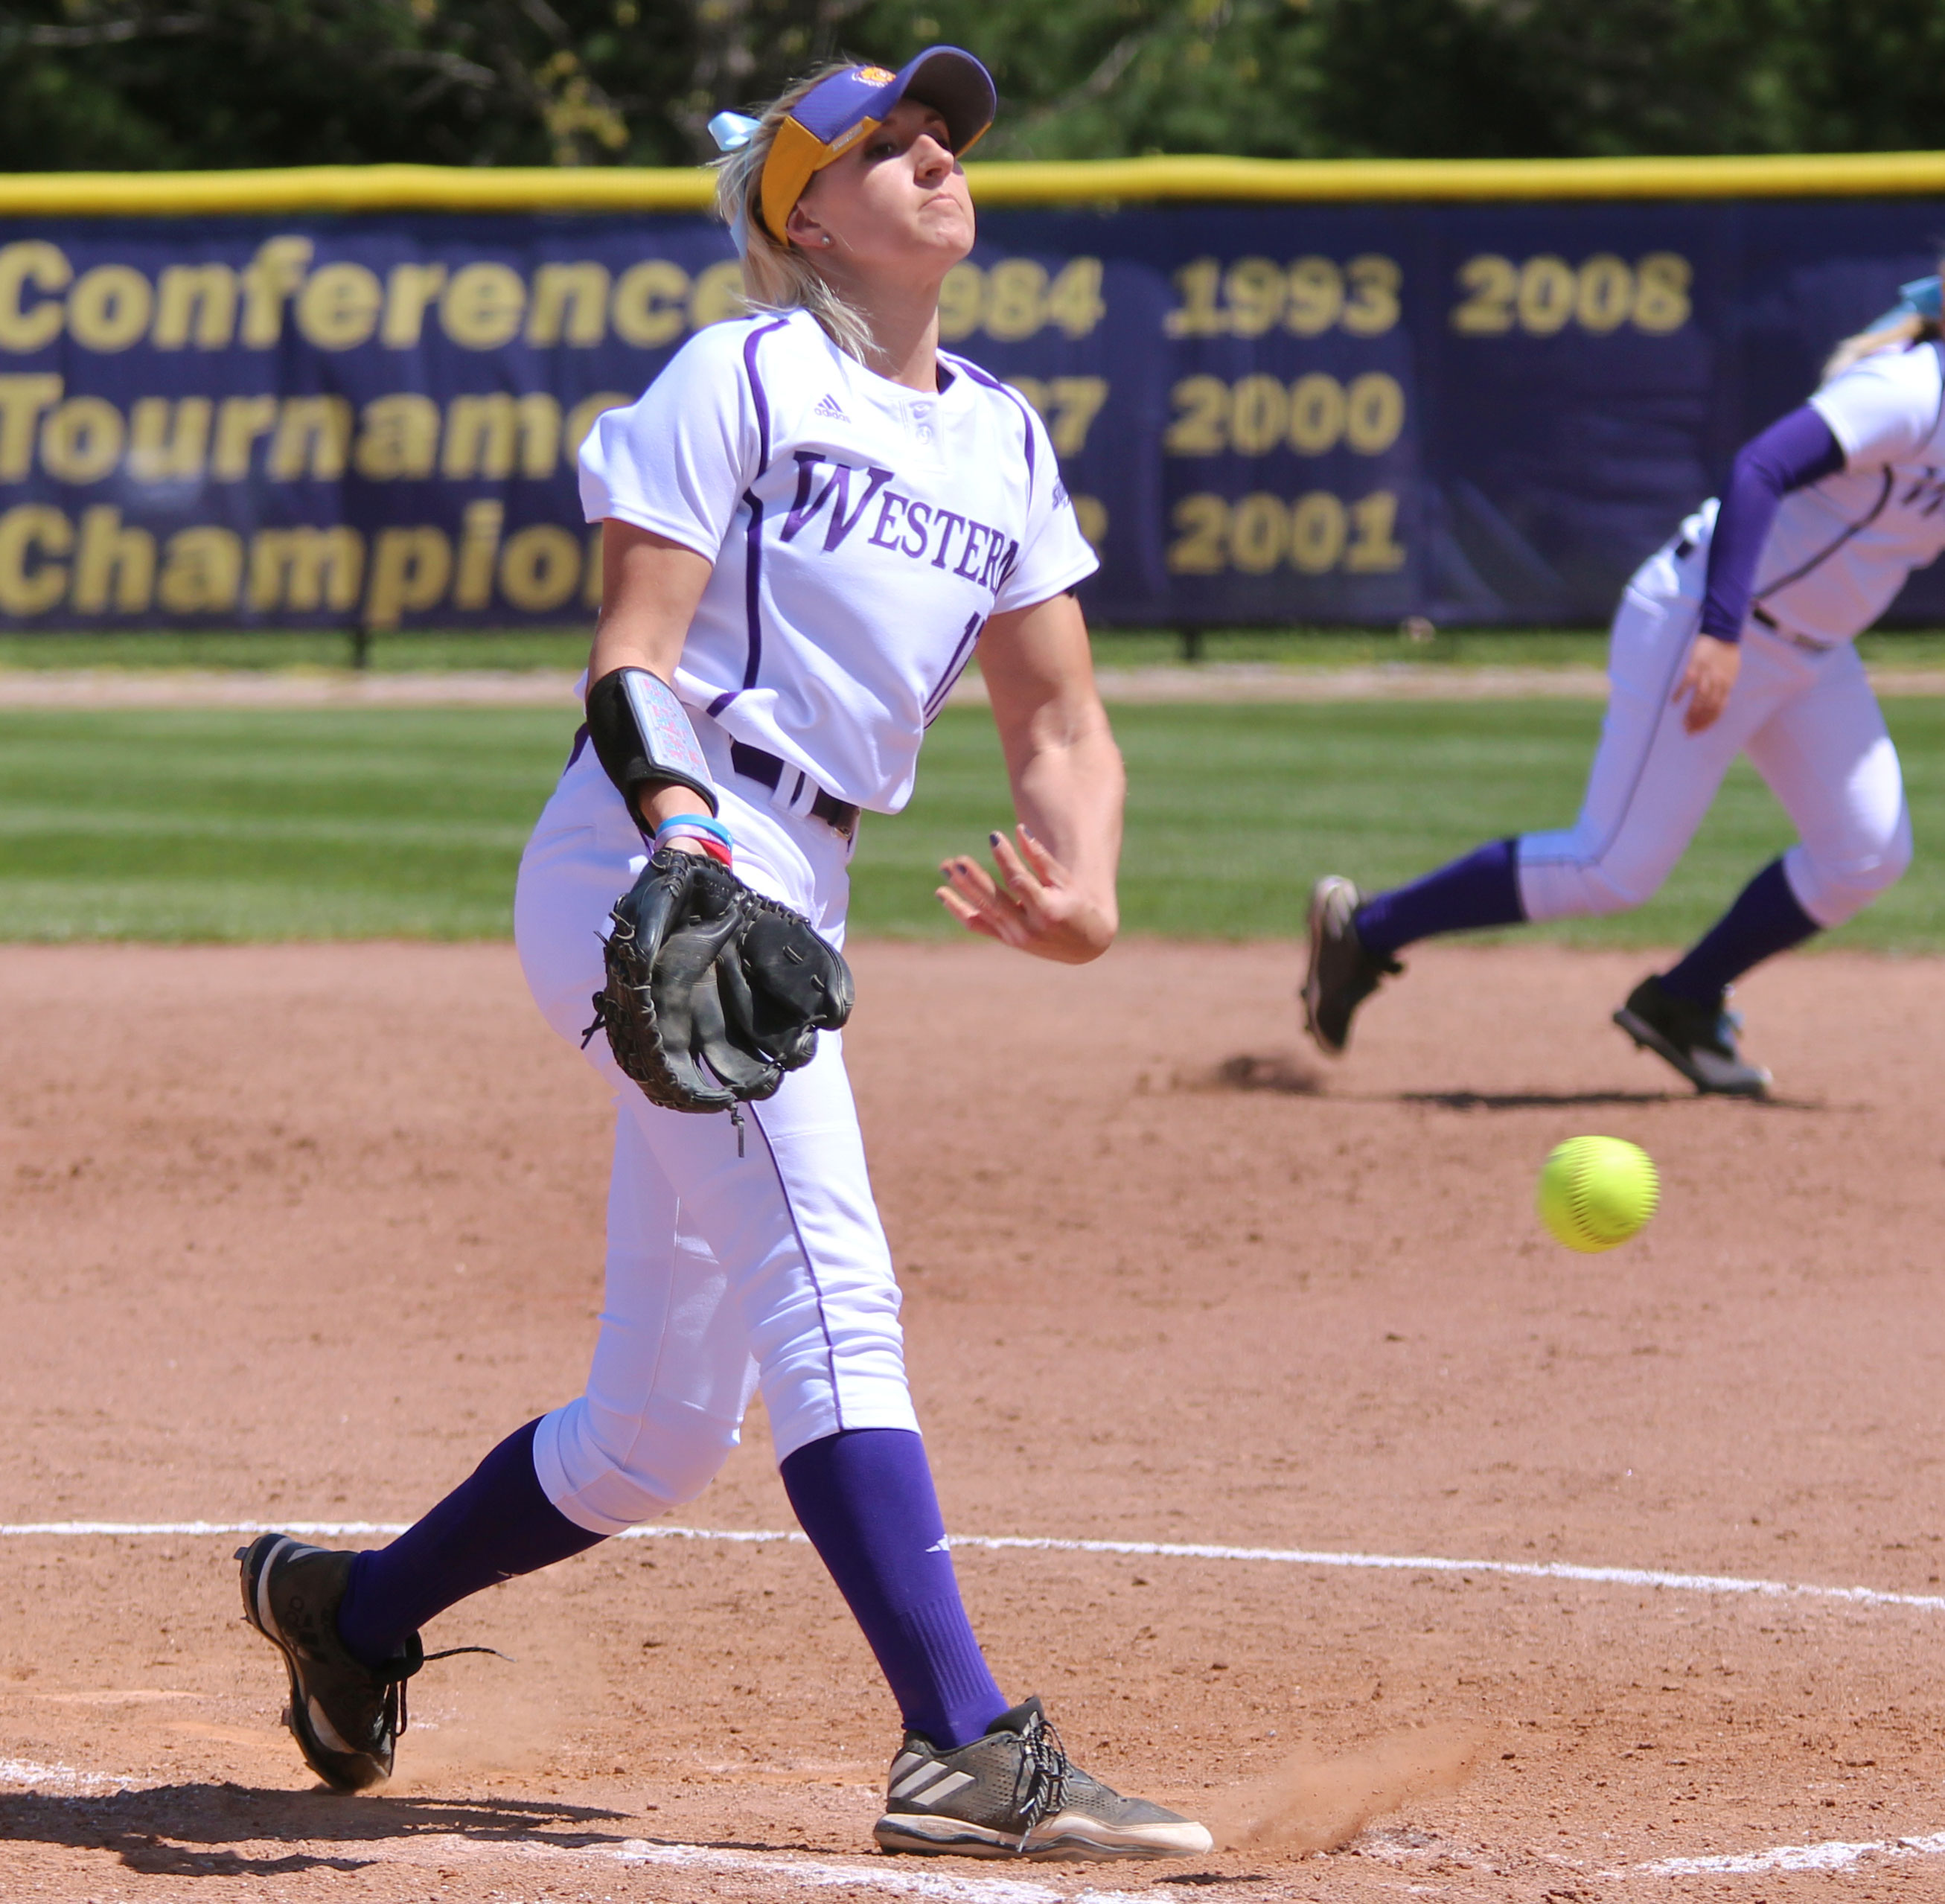 Sophomore hurler Emily Ira delivers a pitch at Mary Ellen McKee Stadium in Game 1 of Saturday's double-header.